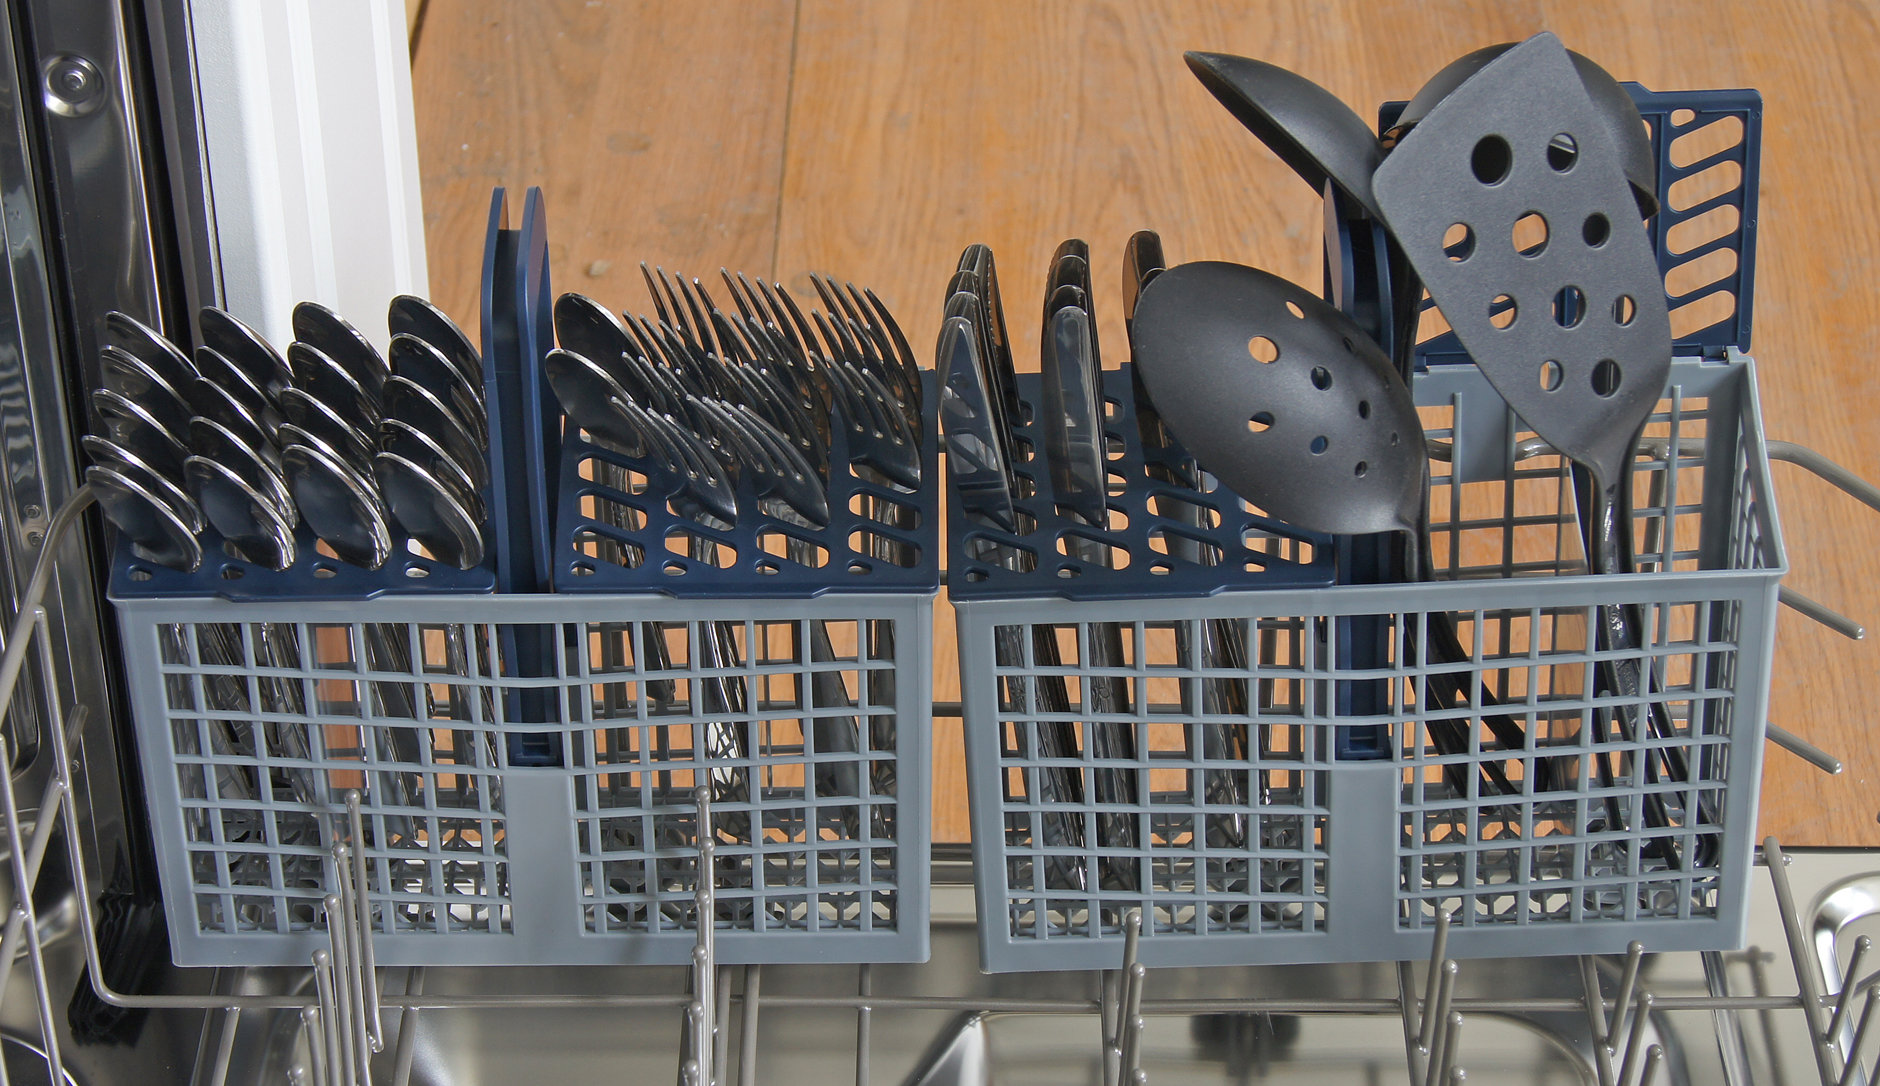 Samsung DW80F600UTS cutlery basket loaded with silverware